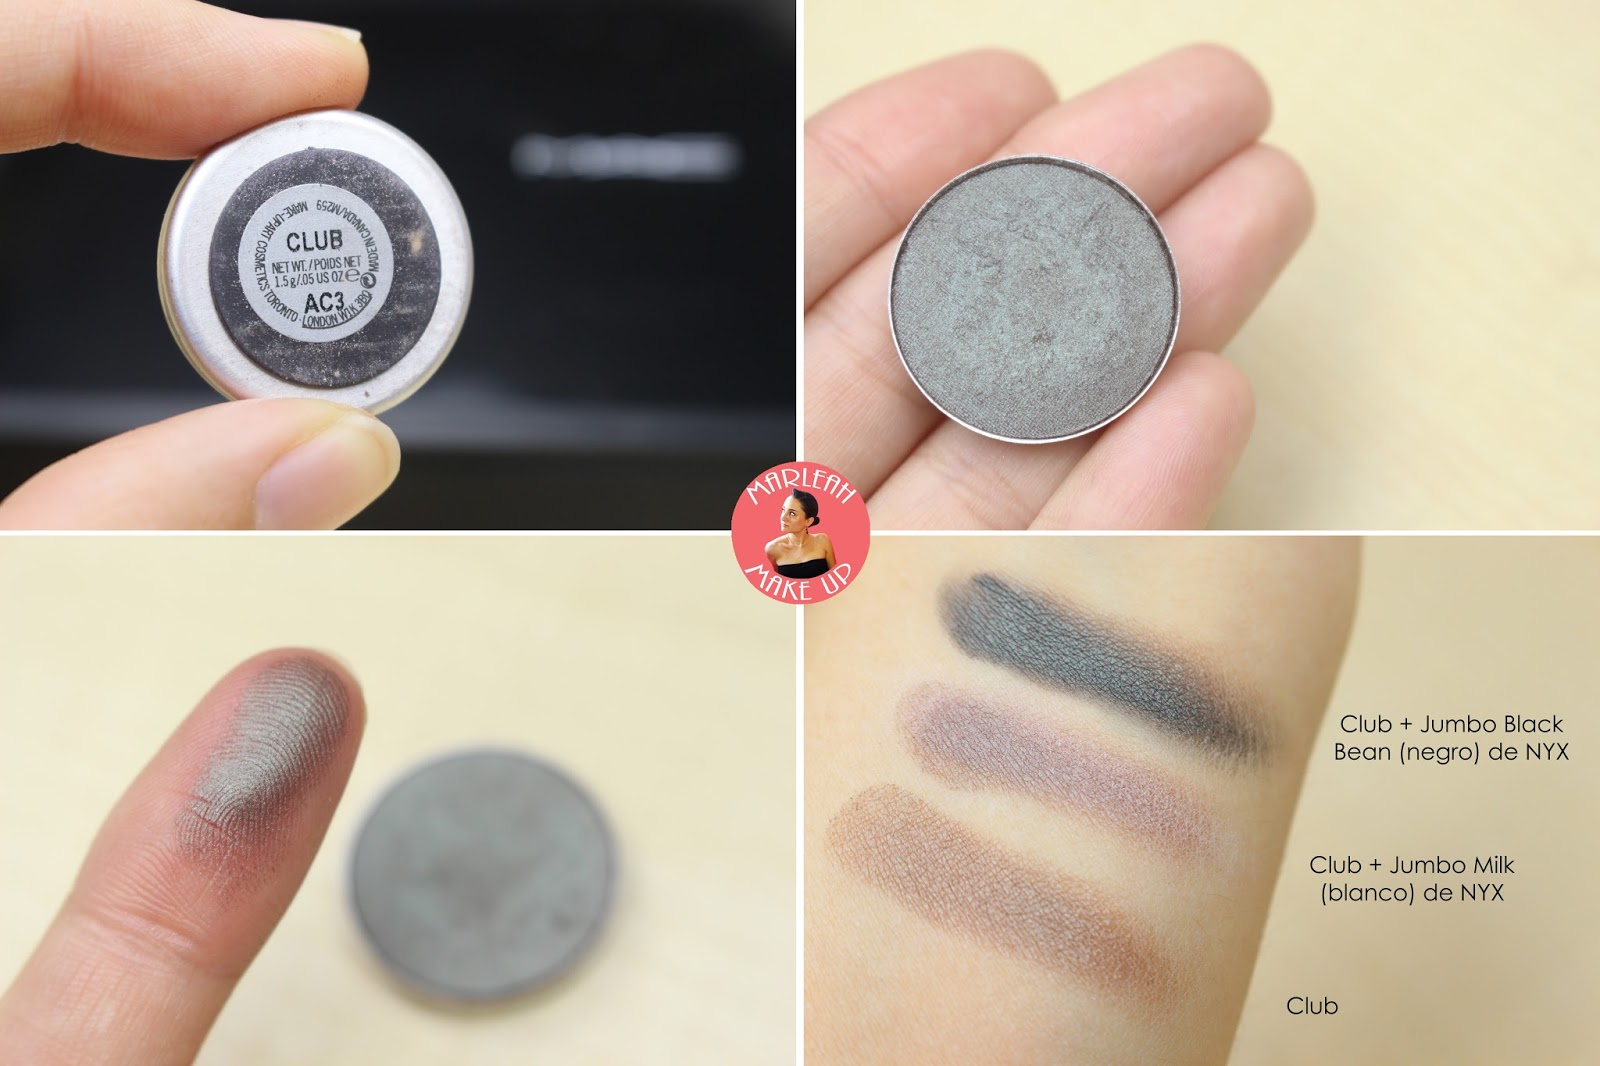 sombras eyeshadow MAC club nyx milk black bean makeup palette godet